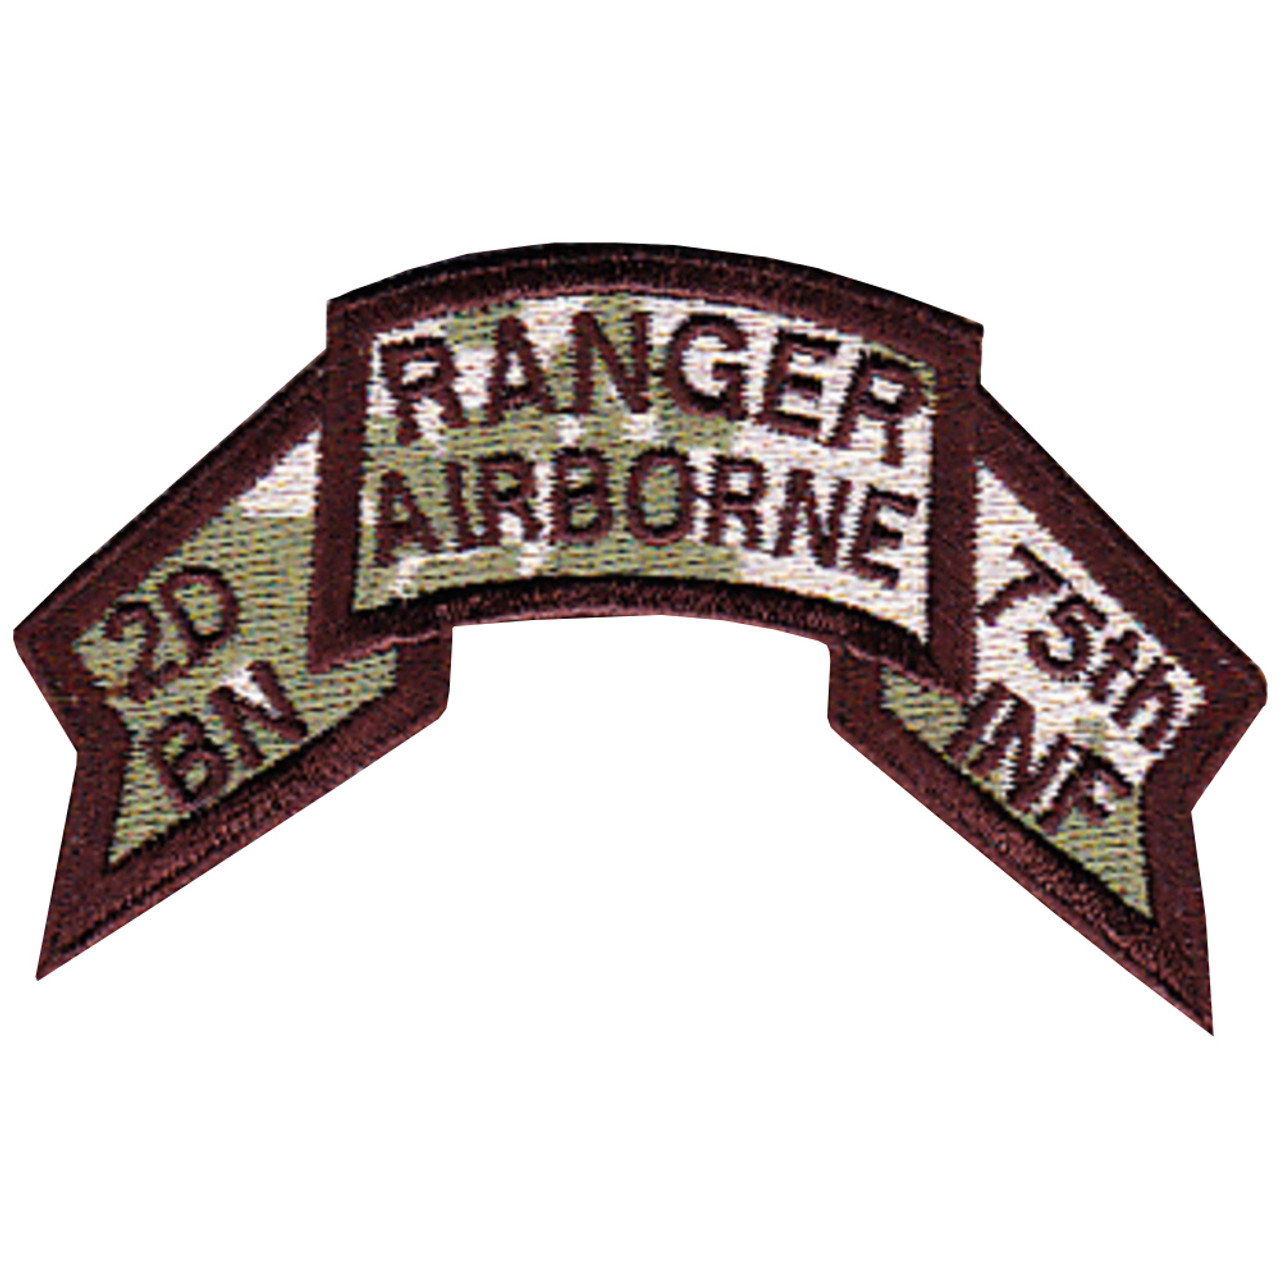 2-75 Inf AIRBORNE RANGER 74-84 USAF ALO scroll patch I